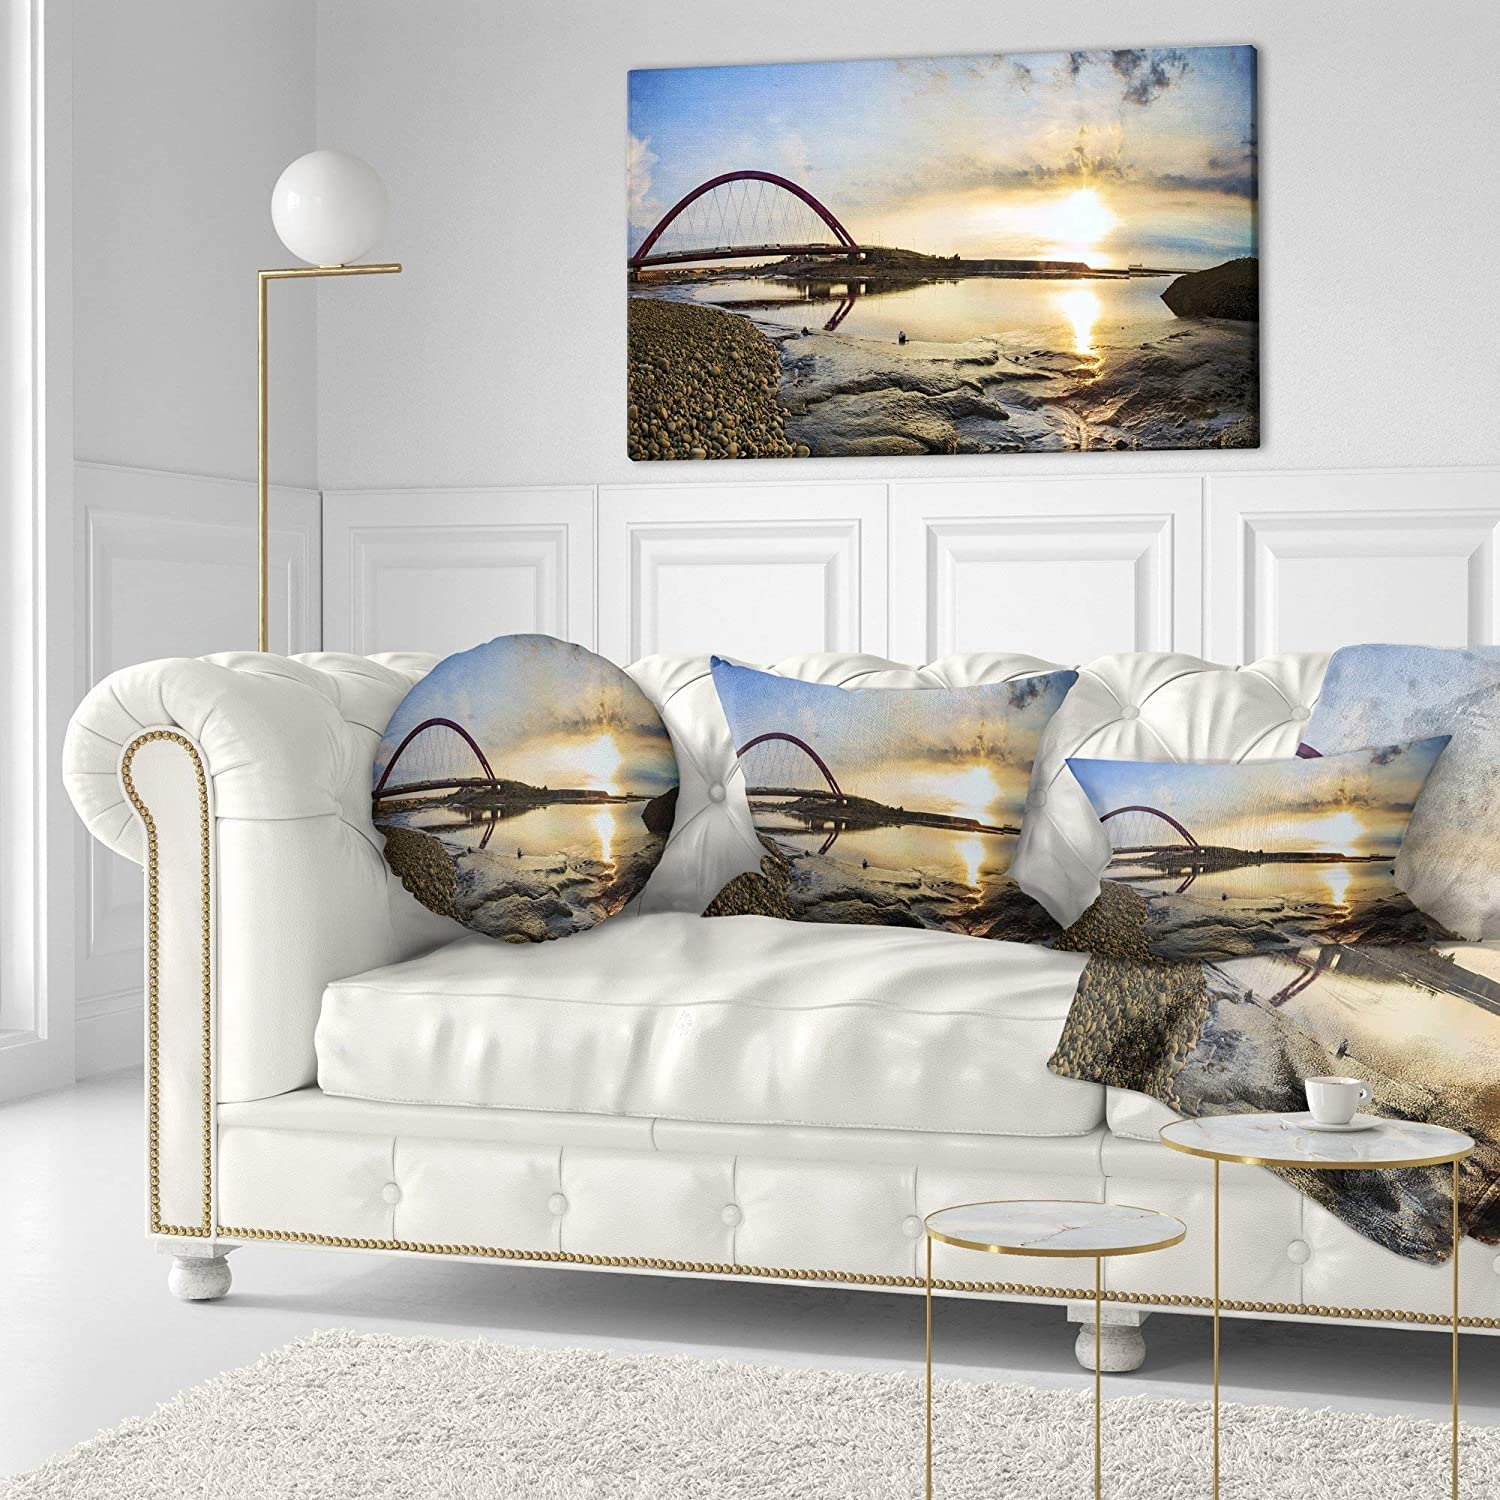 Sofa Throw Pillow 20 Insert Printed On Both Side Designart CU9415-20-20-C Blue Waters in Spring Seascape Photography Round Cushion Cover for Living Room